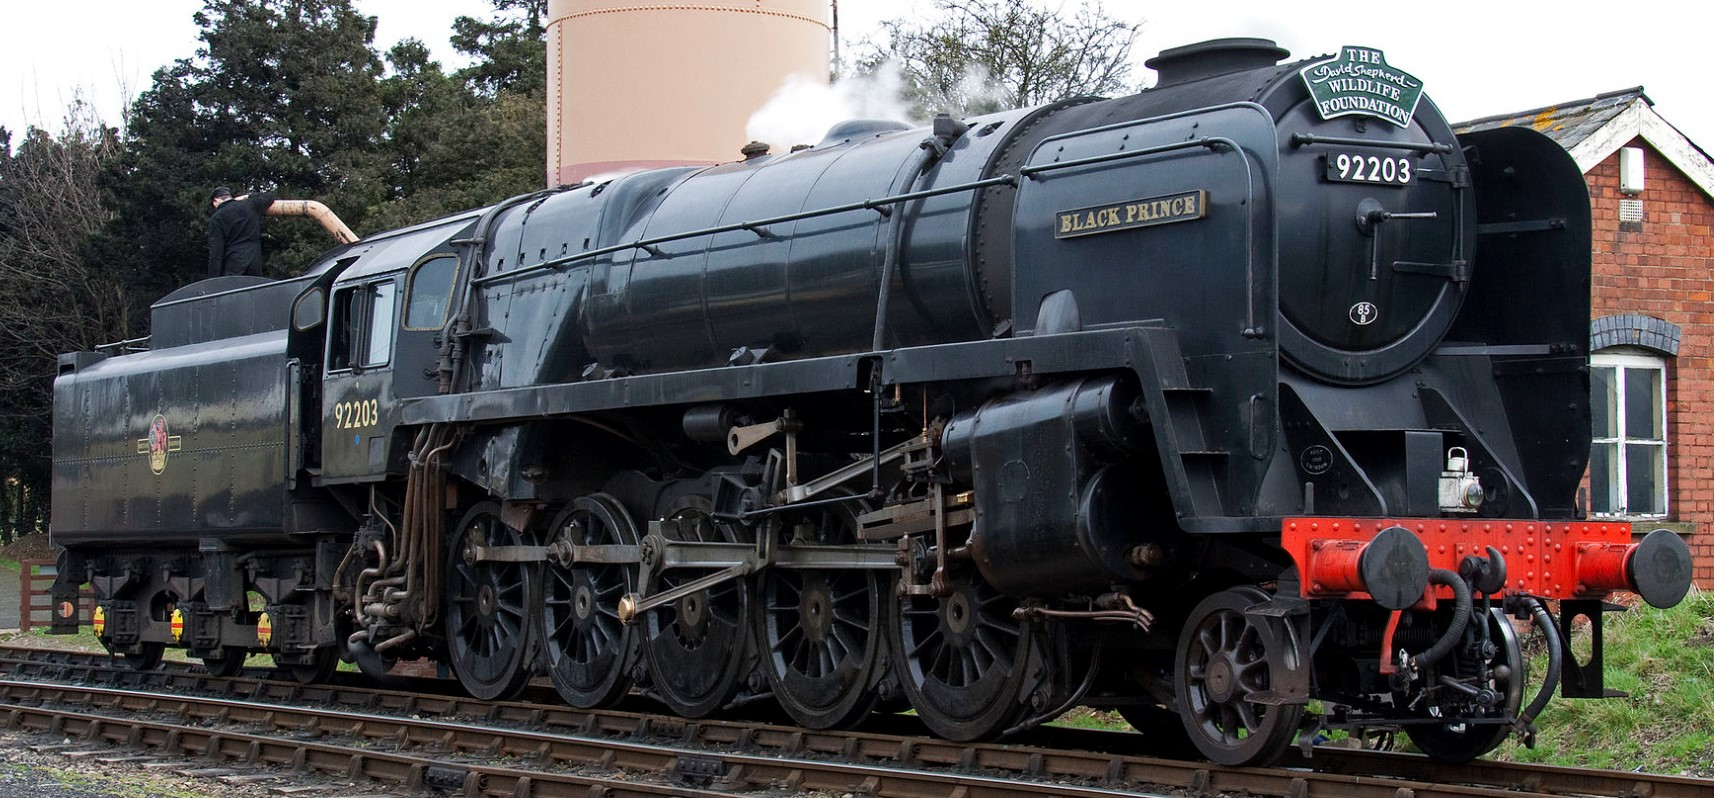 92203 'Black Prince' at Toddington on the Gloucestershire and Warwickshire Railway in April 2010. ©Tony Hisgett